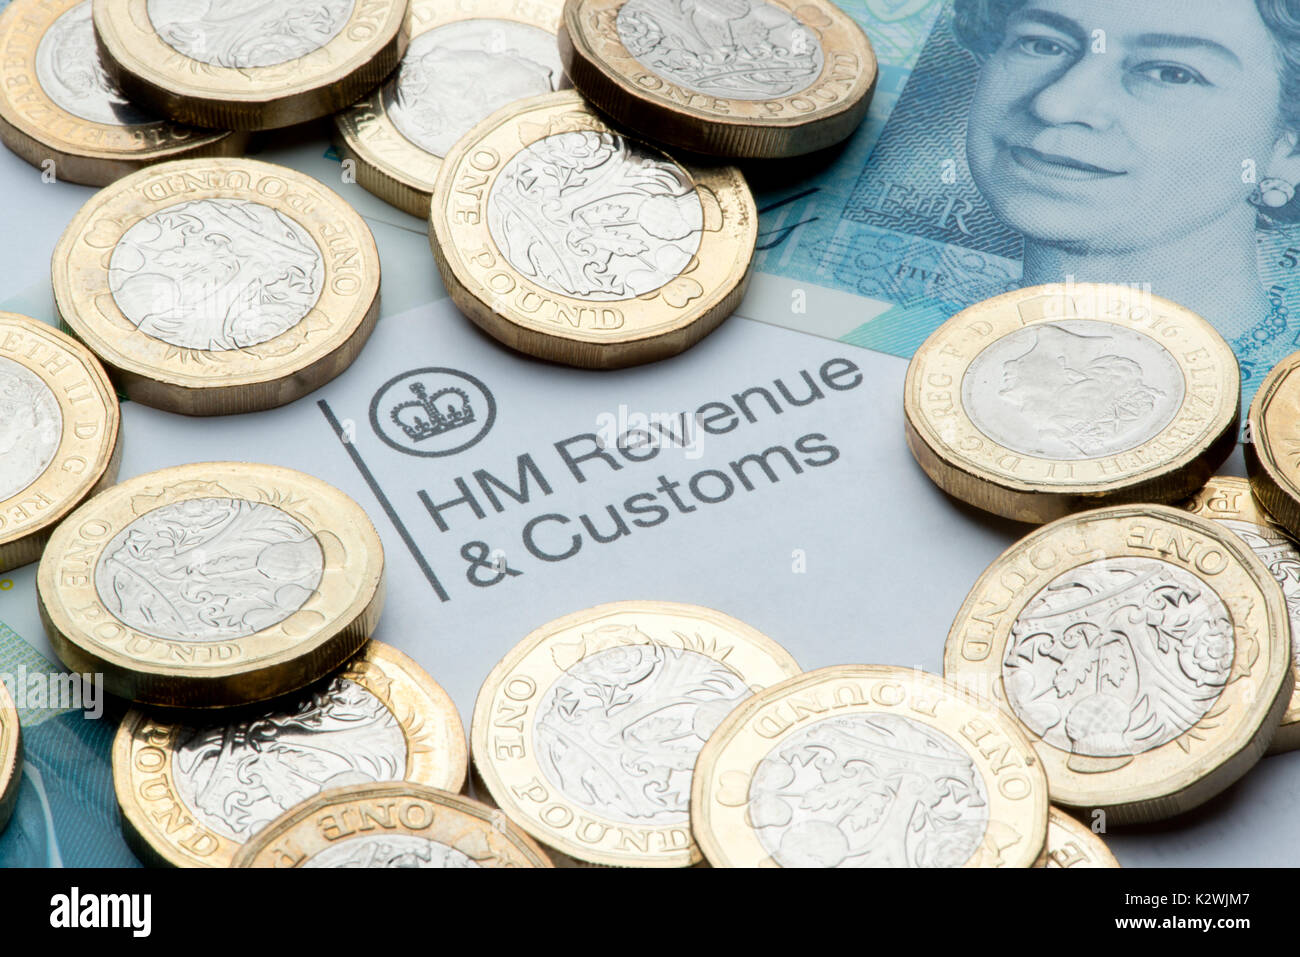 An HM Revenues & Customs letterhead surrounded by new £1 coins and a £5 note. - Stock Image